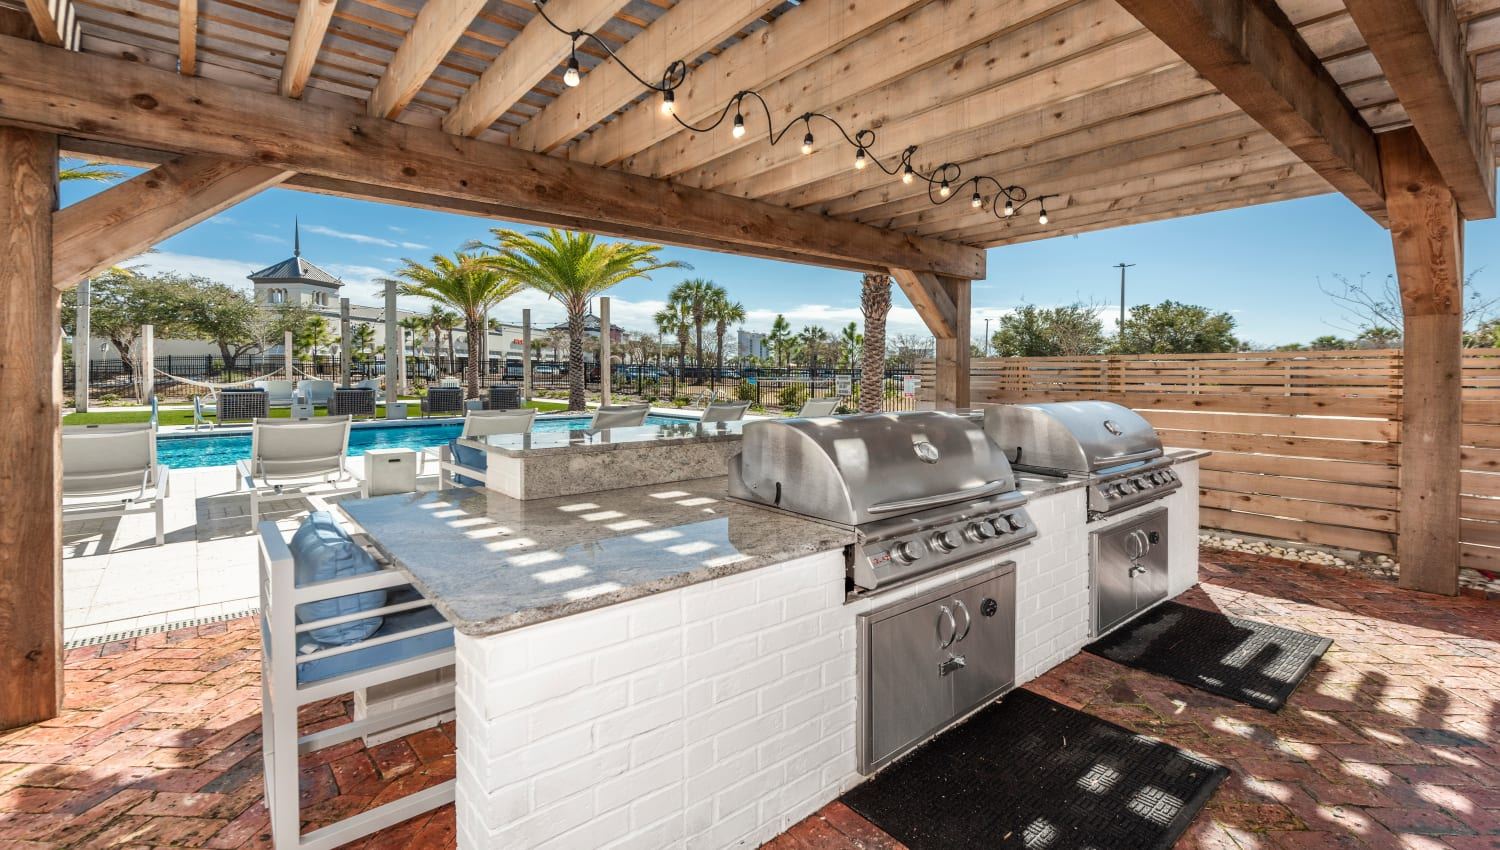 An outdoor grill with bar seating at Olympus Emerald Coast in Destin, Florida